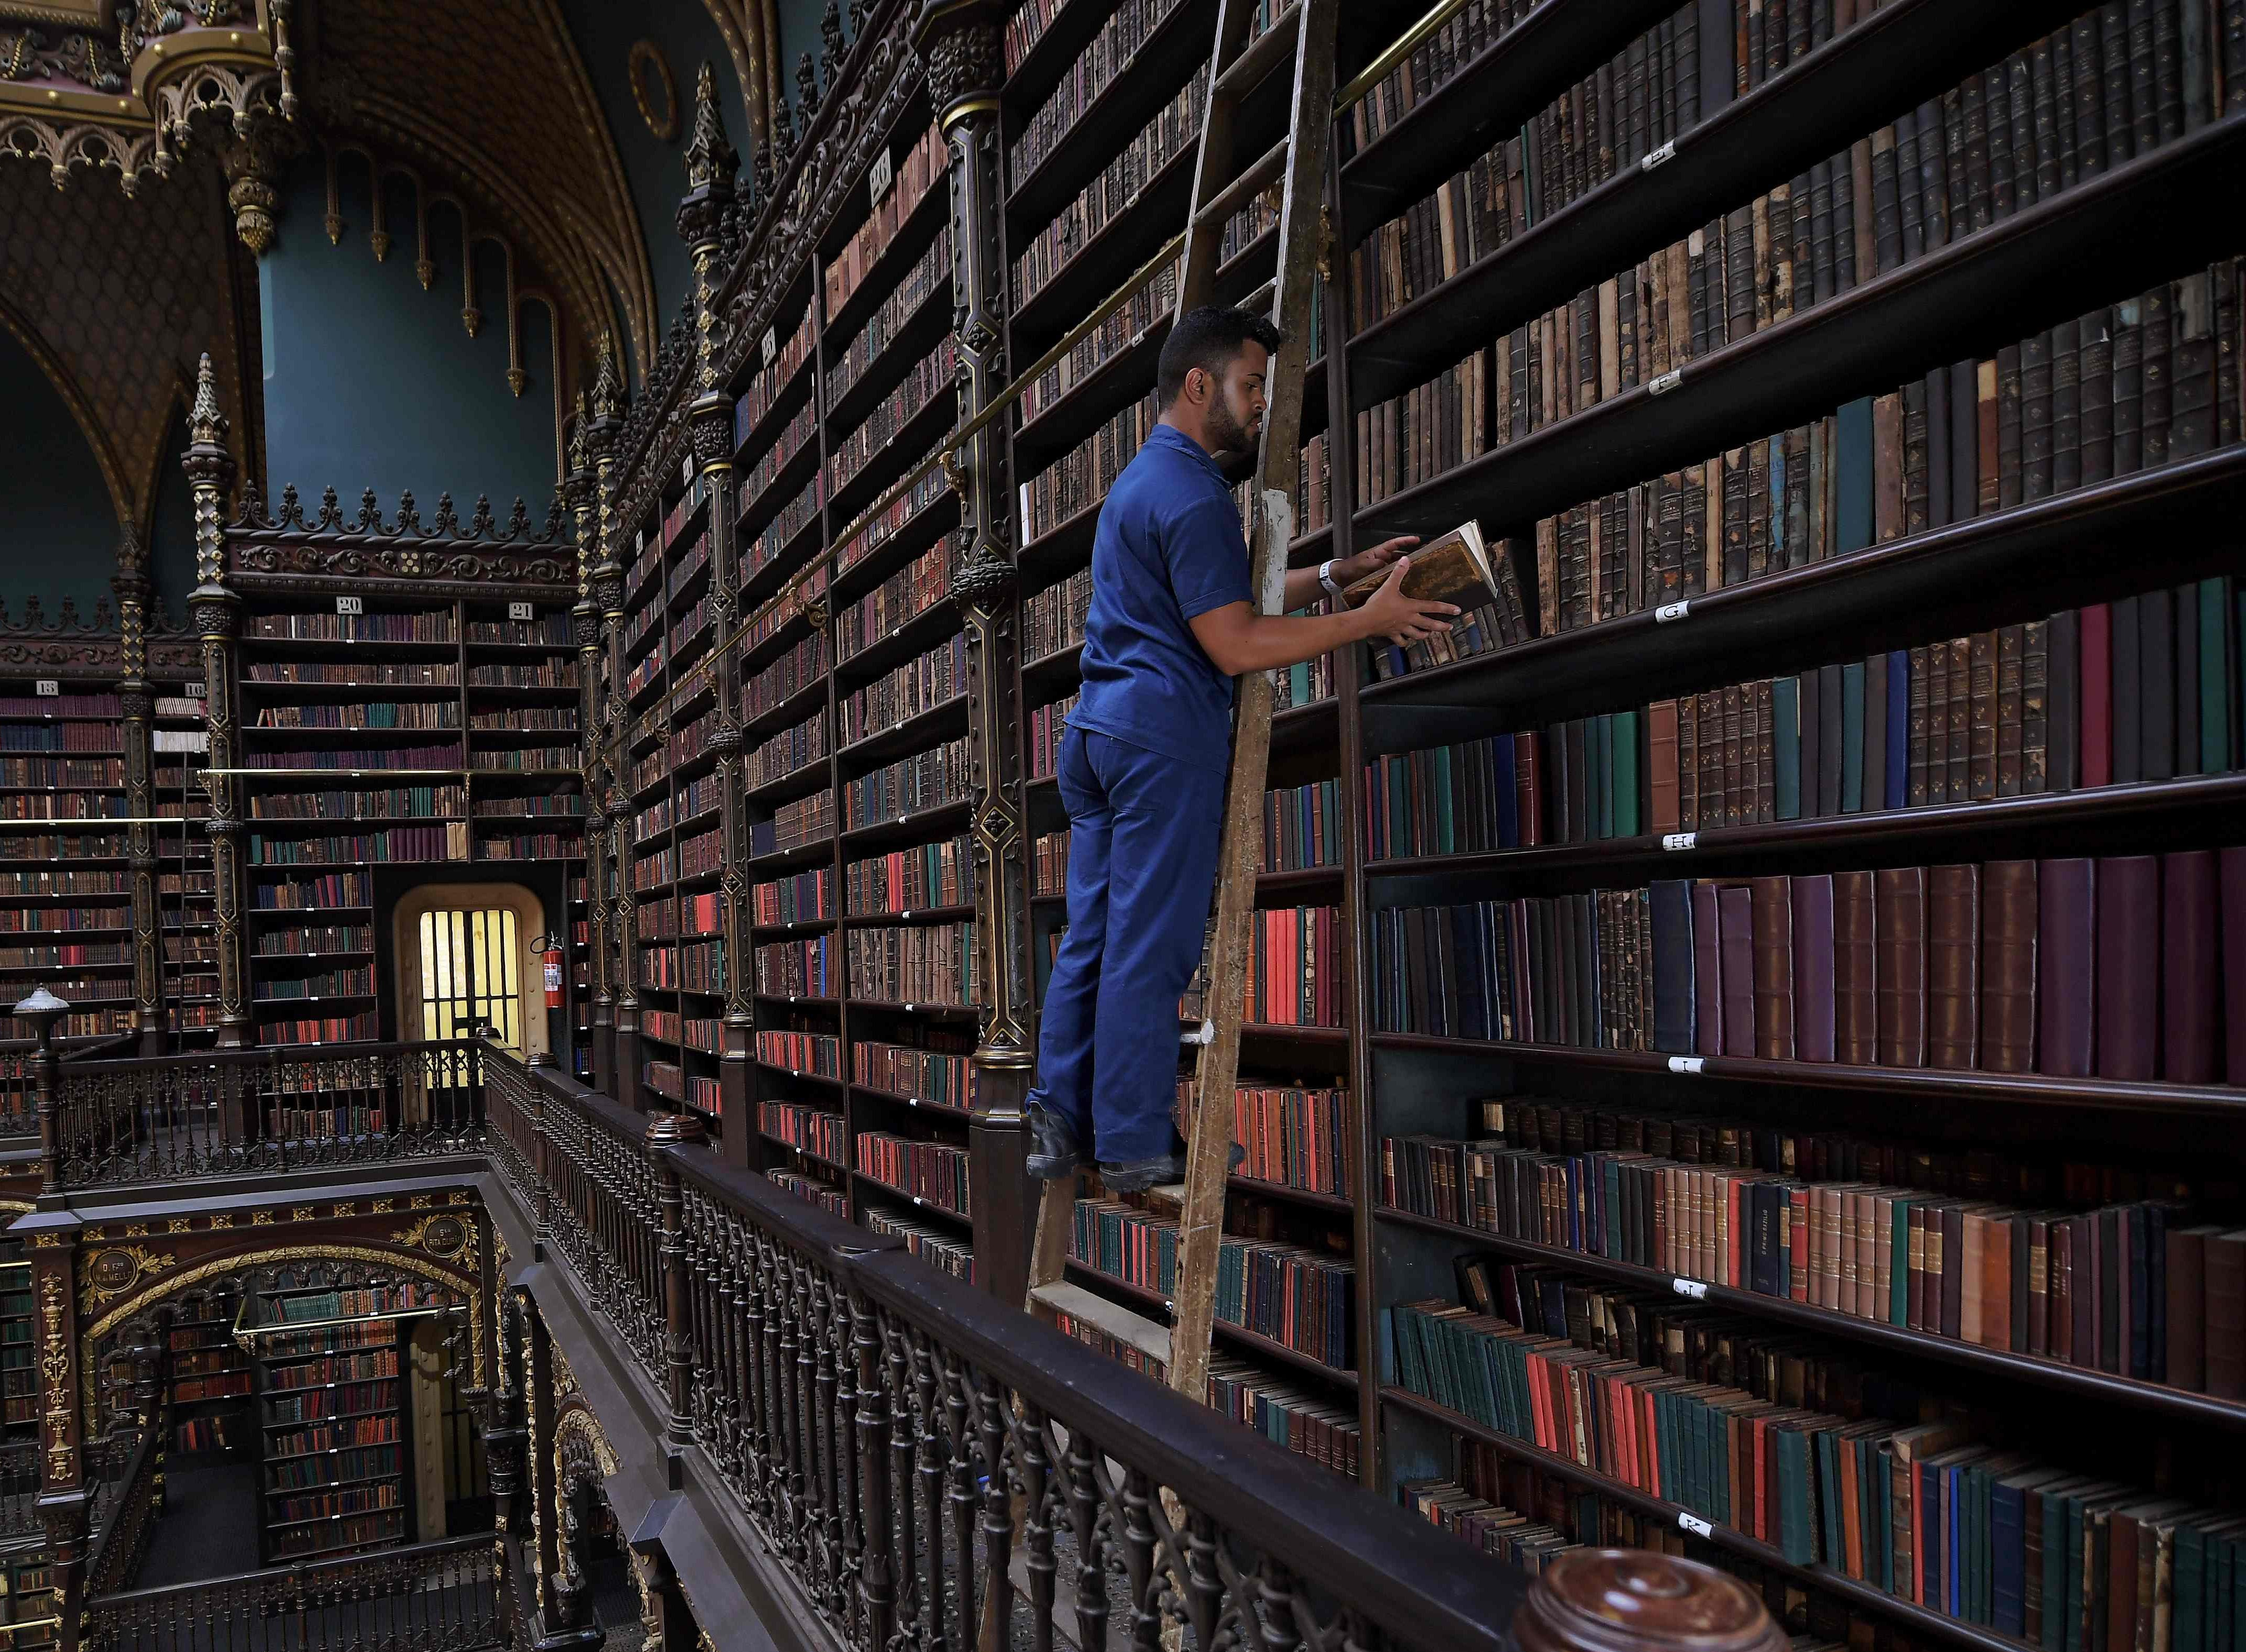 Employee Jeferson Deodata da Silva selects a book from the shelves of the Royal Portuguese Cabinet of Reading in Rio de Janeiro, Brazil, on Nov. 19, 2018. The institution was founded in 1837 by a group of forty-three Portuguese immigrants -political refugees- to promote culture among the Portuguese community in Brazil.